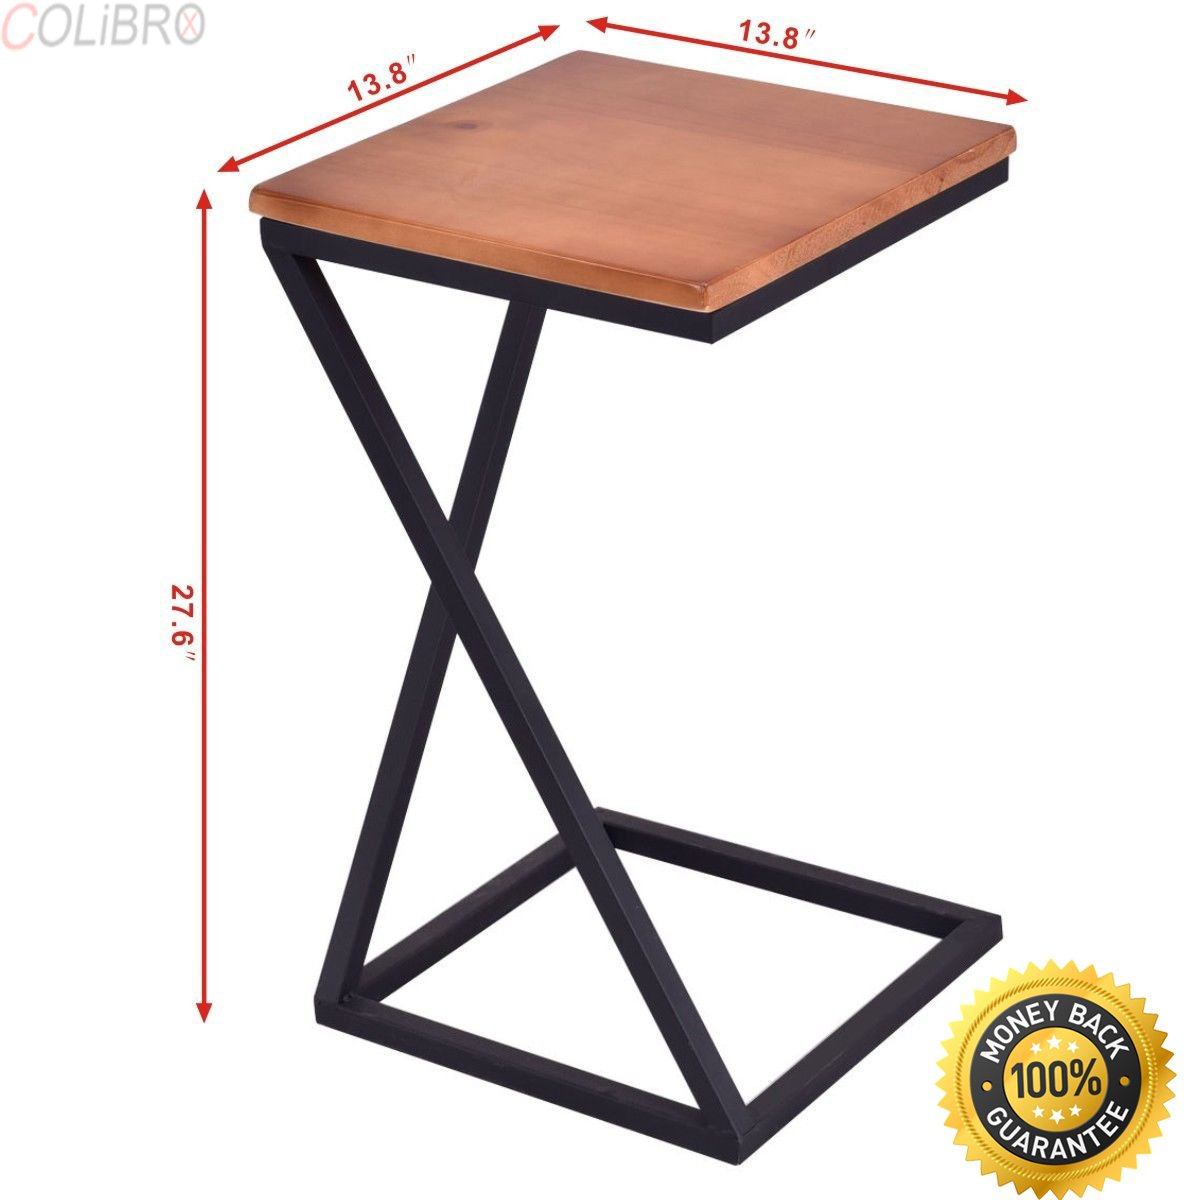 COLIBROX--Coffee Tray Side Sofa Table Ottoman Couch Console Stand End TV Lap W/Wood TOP Yaheetech Coffee Tray Side Sofa Table Ottoman Couch Room Console Stand End TV Lap Snack